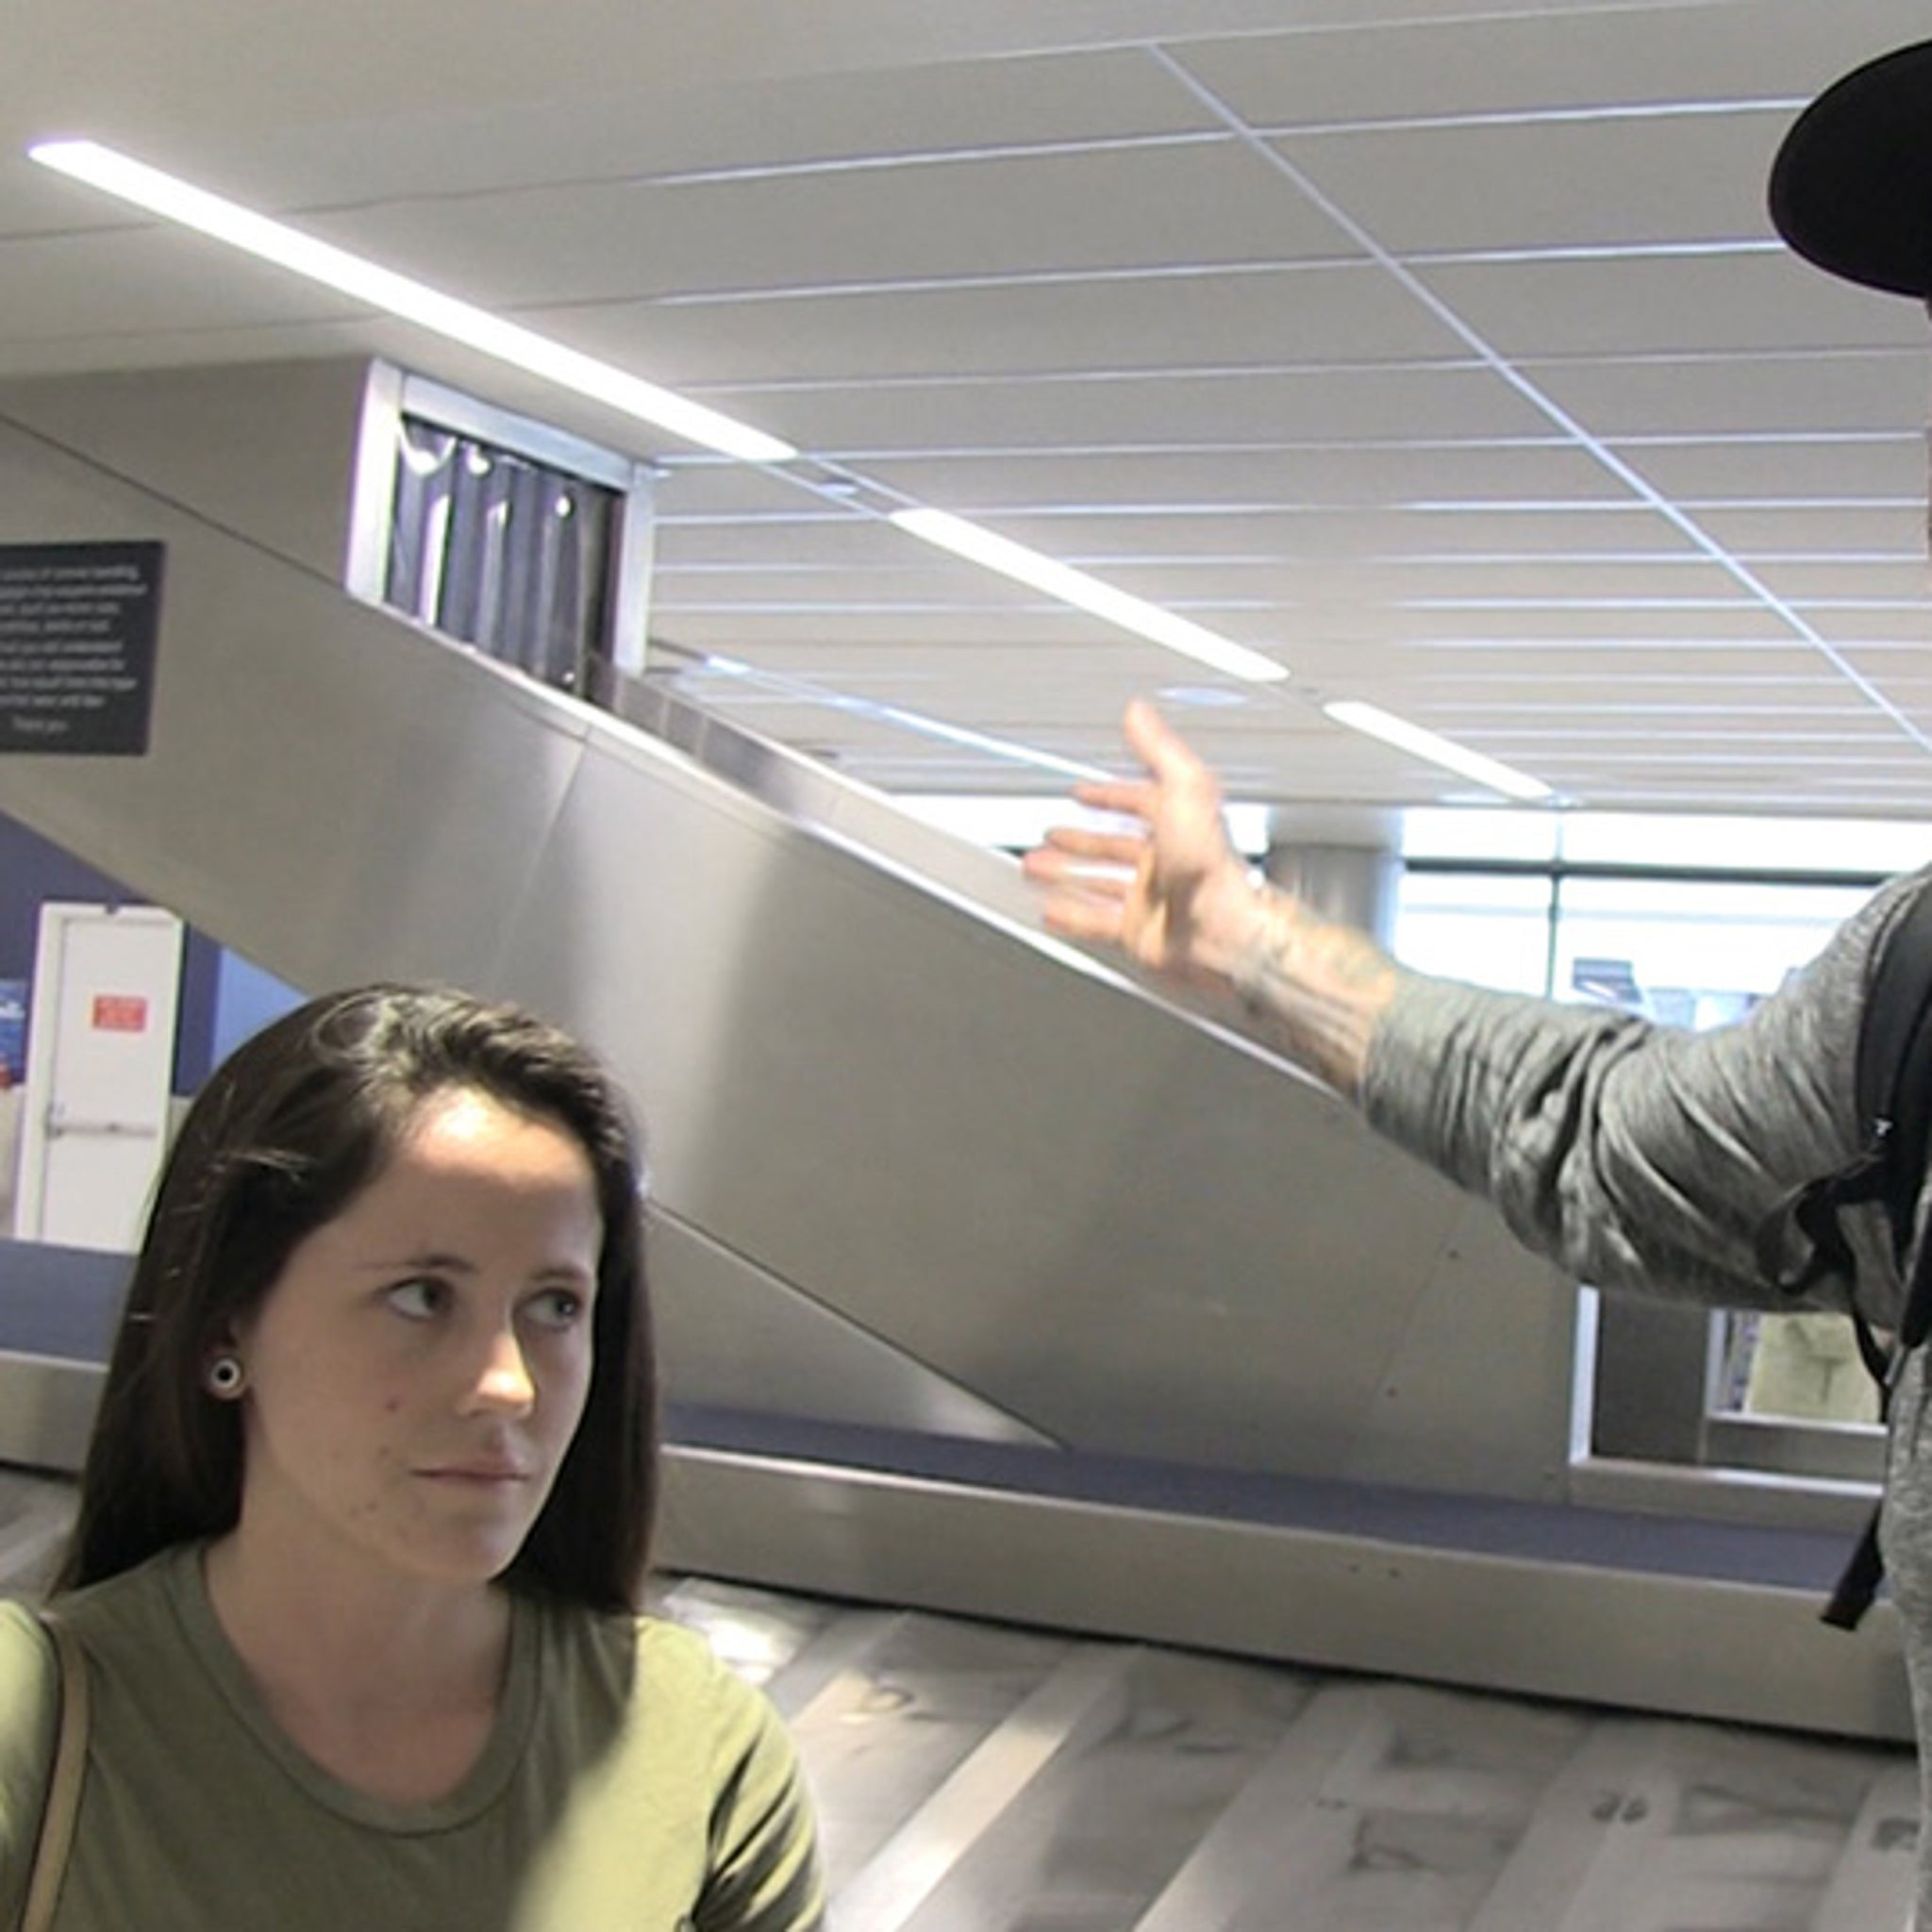 Teen Mom' Star Jenelle Evans and Husband Duck LGBT Apology